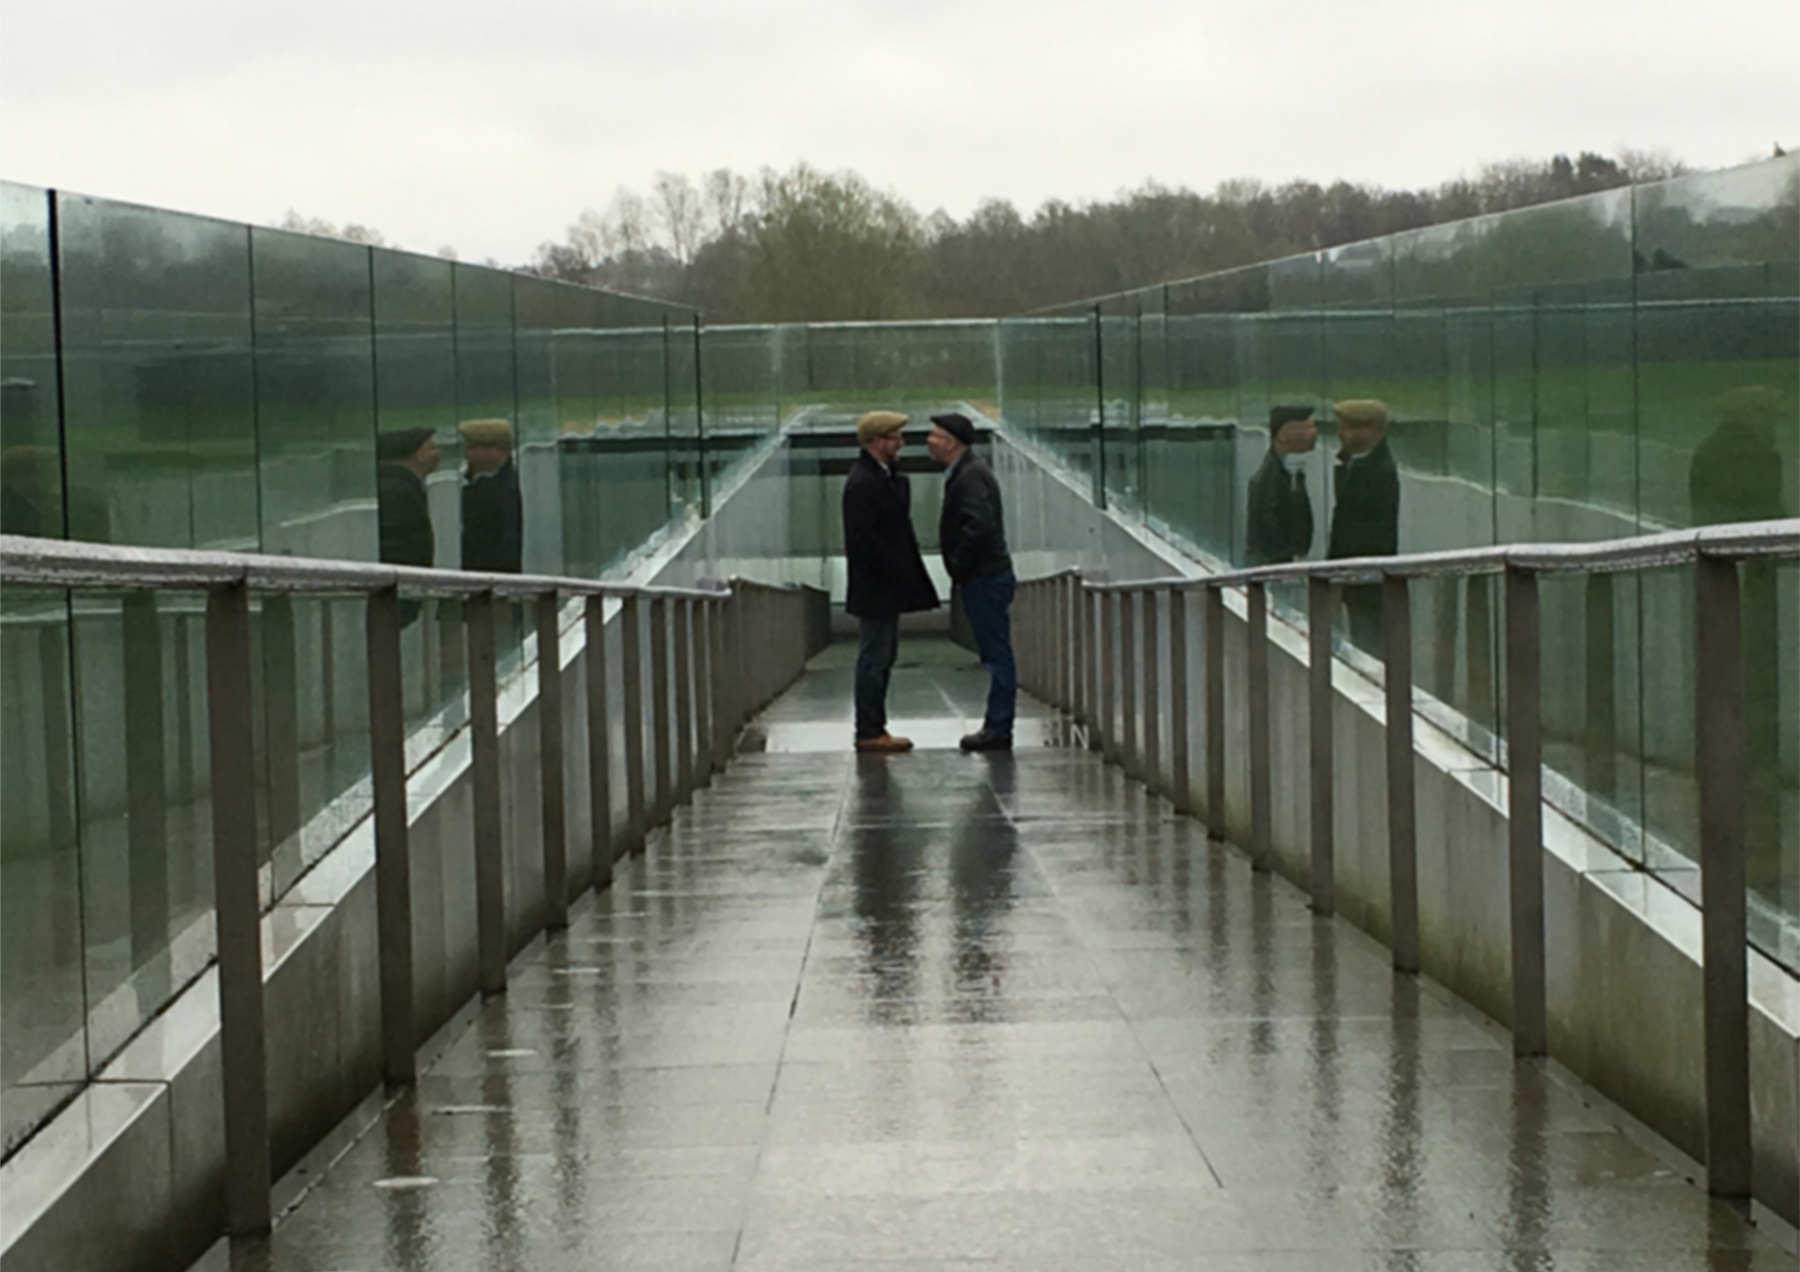 A photograph of David Martin stood with Jez Dolan outside the Sainsbury Centre for the Arts